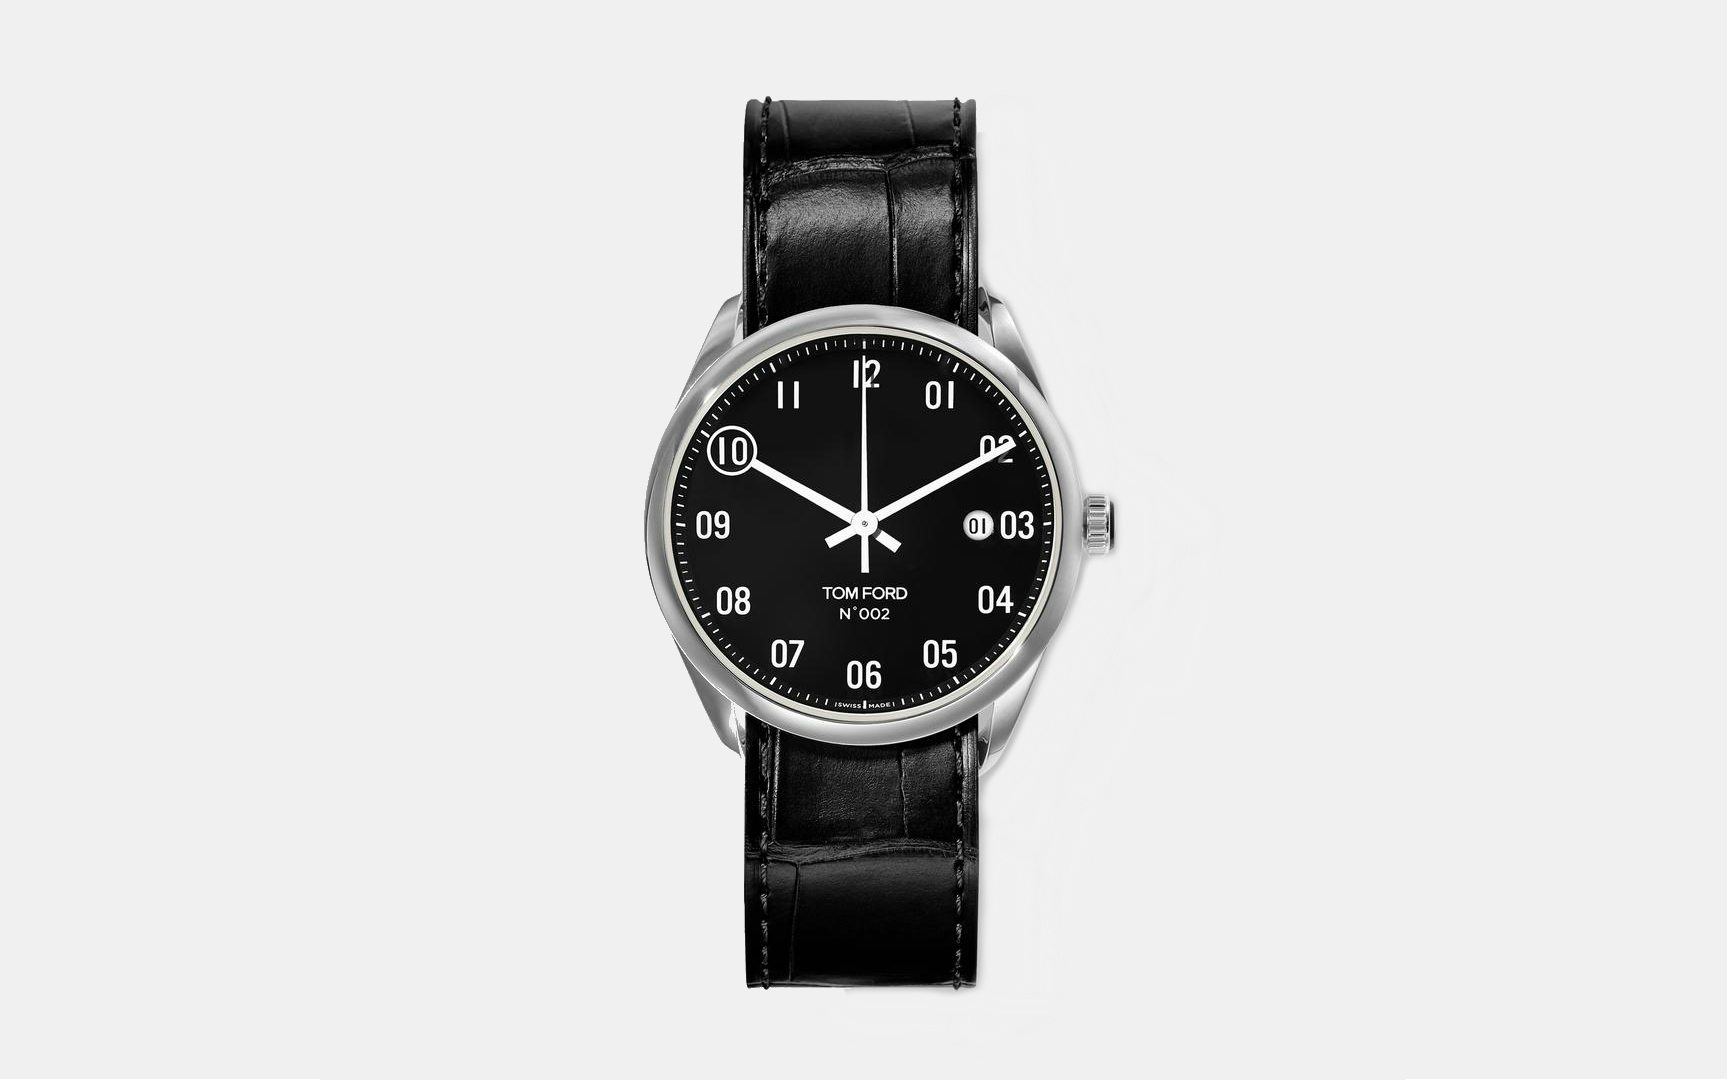 Tom Ford 002 Automatic Watch